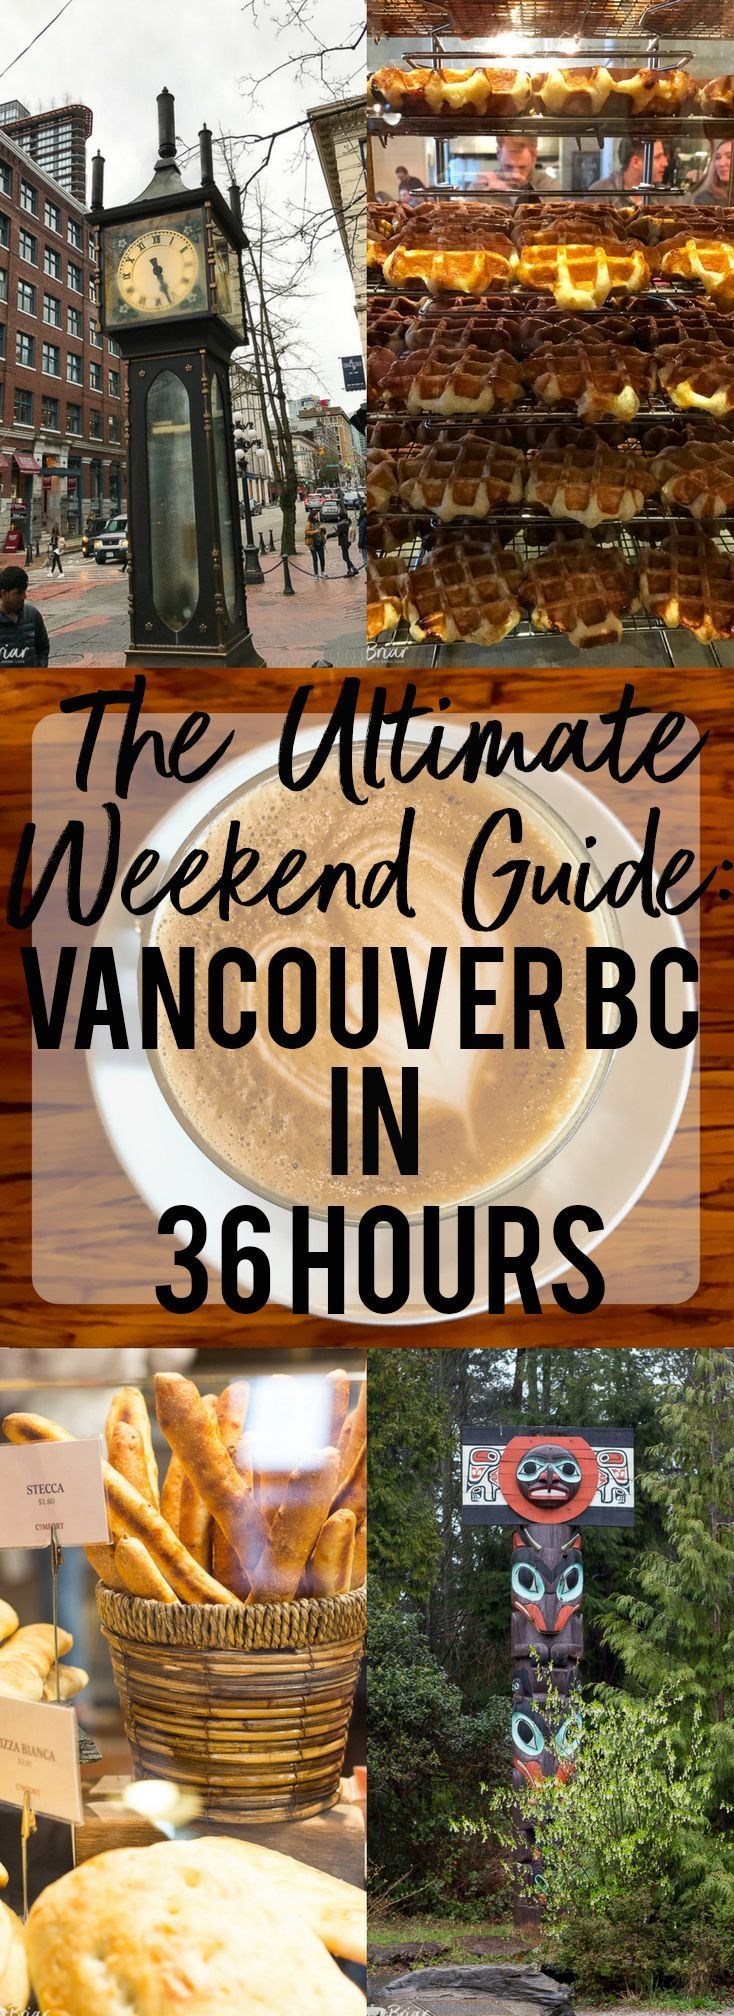 What to do and where to eat in Vancouver, B.C. The Ultimate Weekend Travel Guide! How to spend 36 hours in Vancouver, Canada. | Best places to eat in vancouver | tourist attractions Vancouver BC | Weekend trip to Vancouver | Things to do in Vancouver